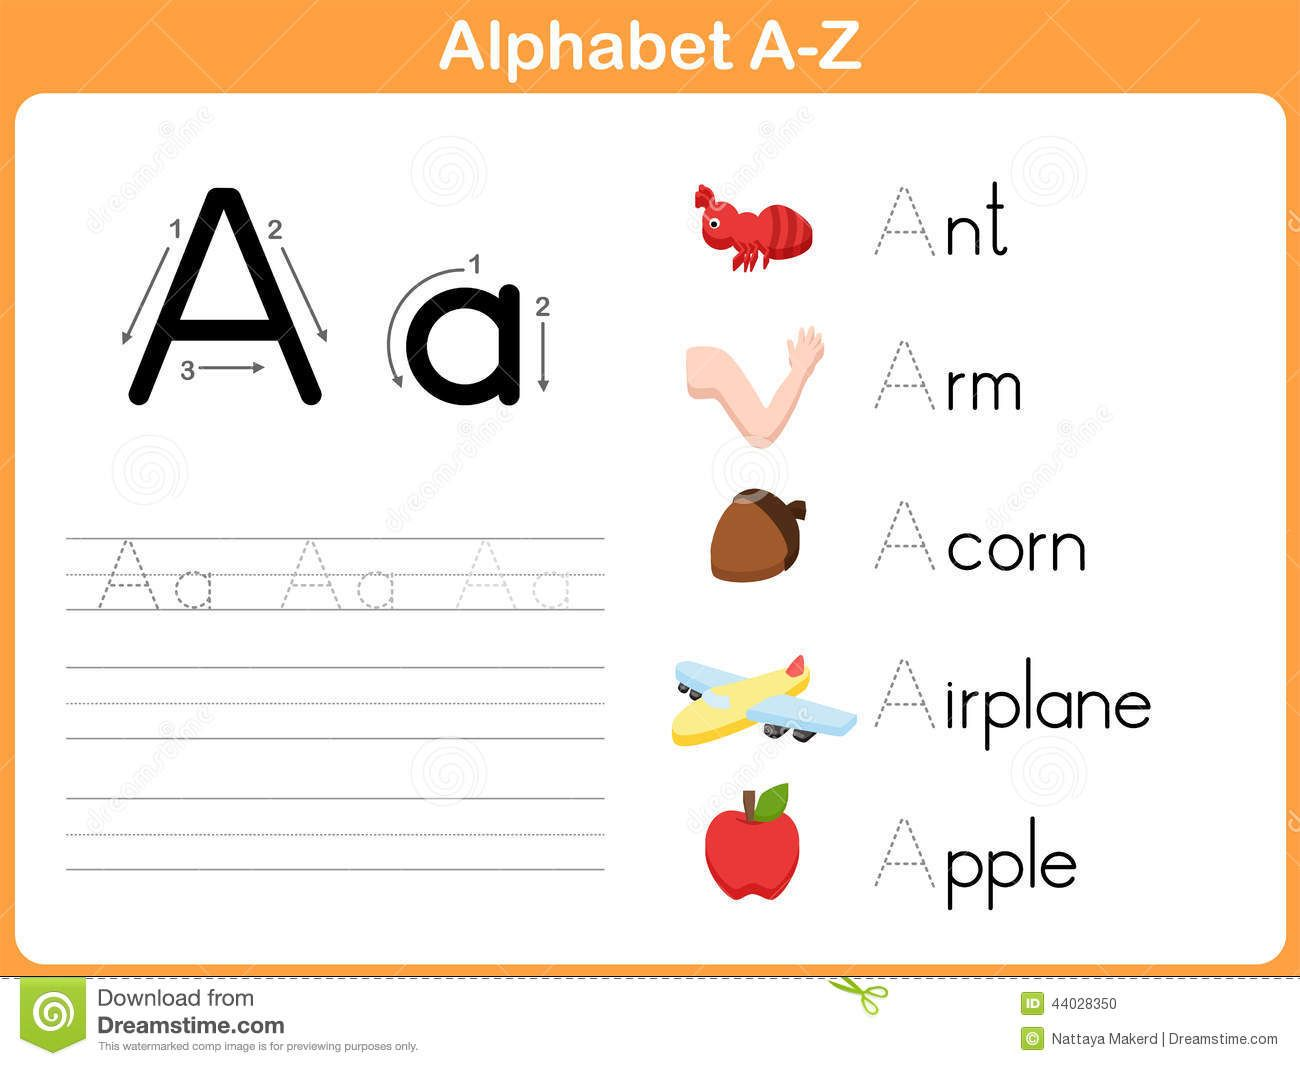 Chic Traceable Alphabet Worksheets A Z For Your Alphabet Worksheets A To Z